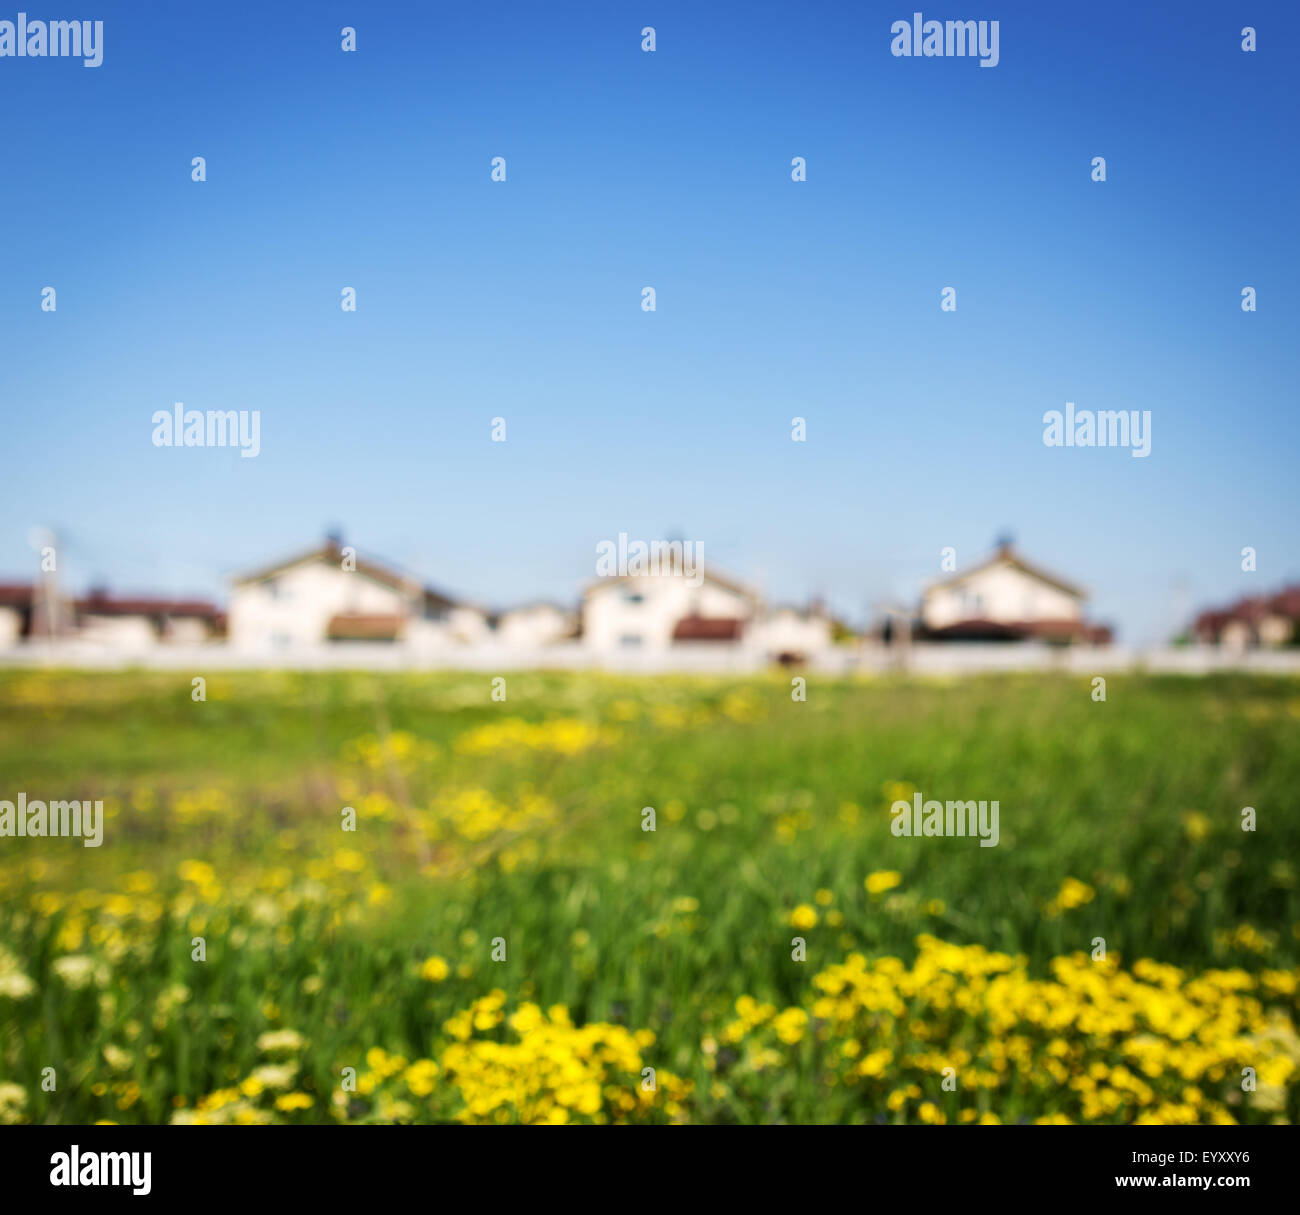 Group of houses in the countryside. Defocused photo - Stock Image